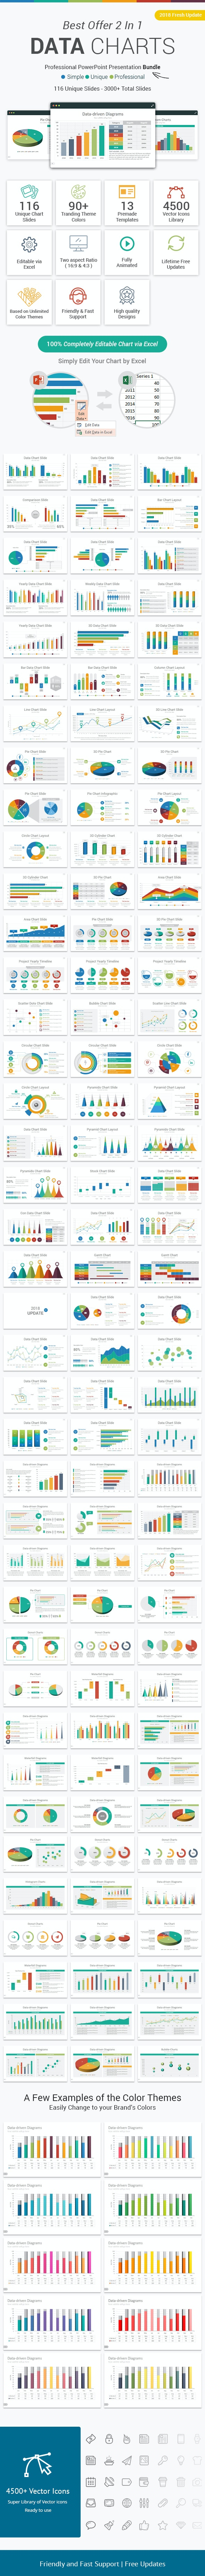 2 In 1 Data Charts PowerPoint Presentation Template Bundle - Creative PowerPoint Templates